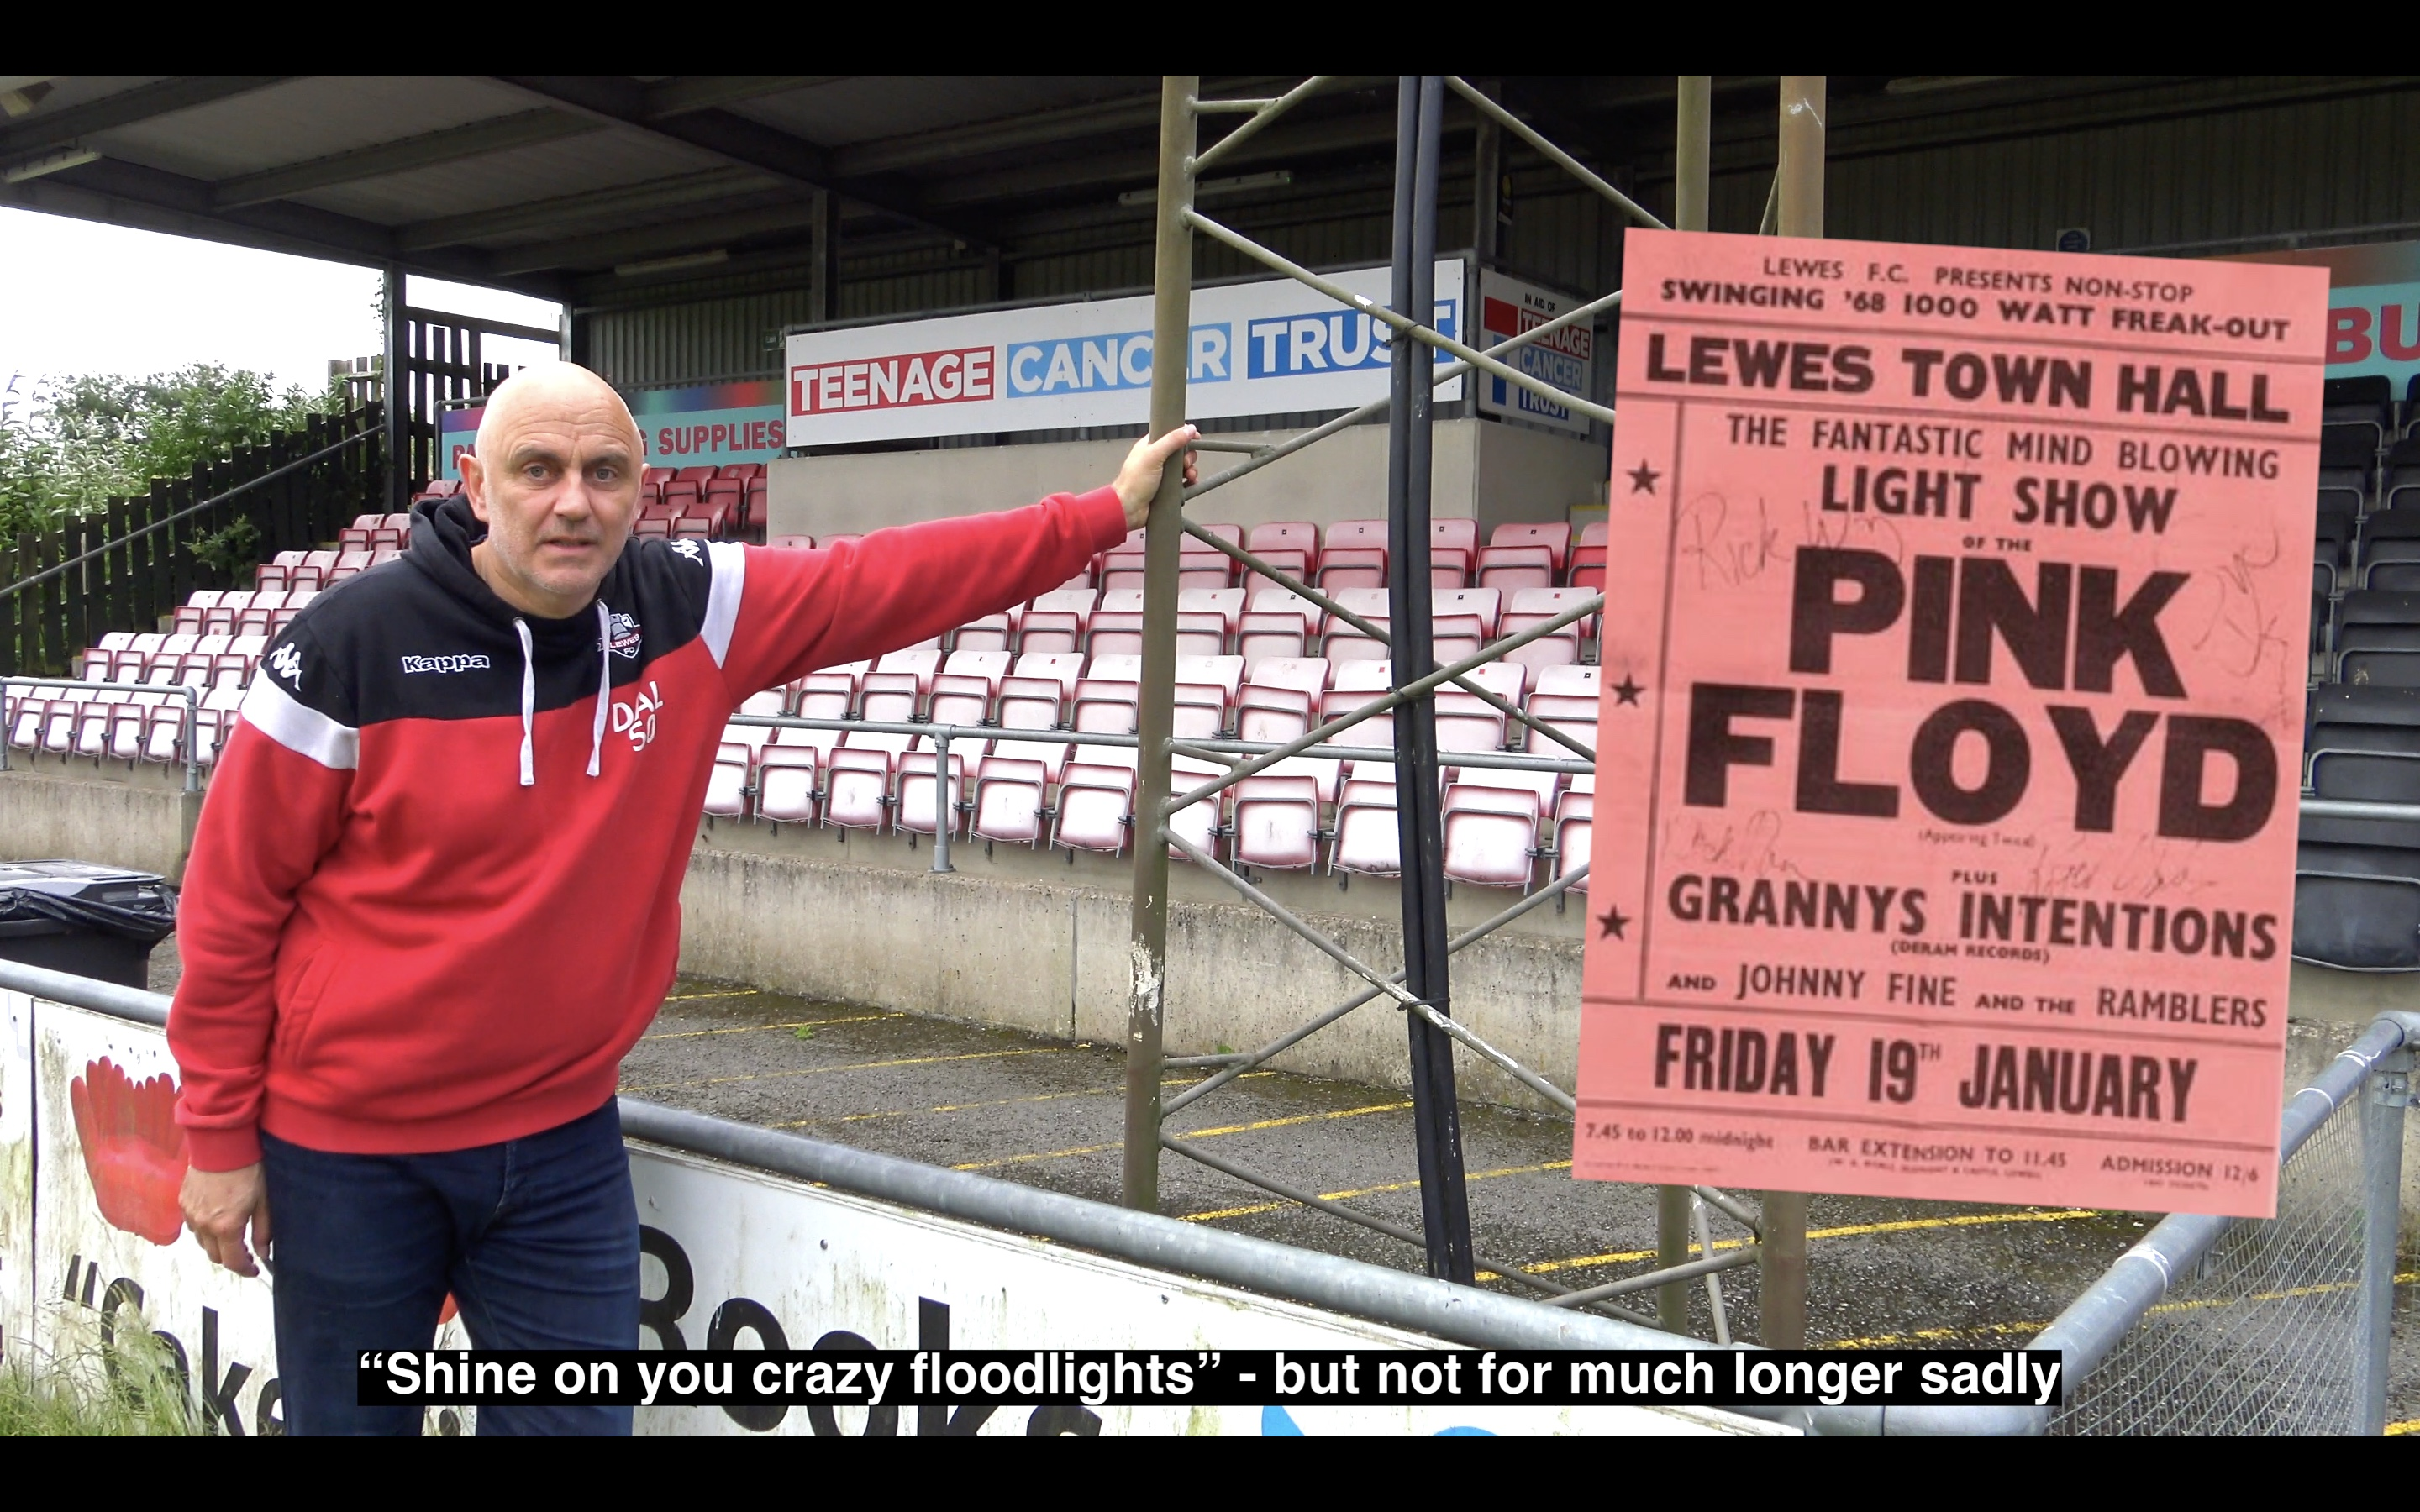 Dave Lamb asks fellow Lewes supporters and 'likers' to dig deep...